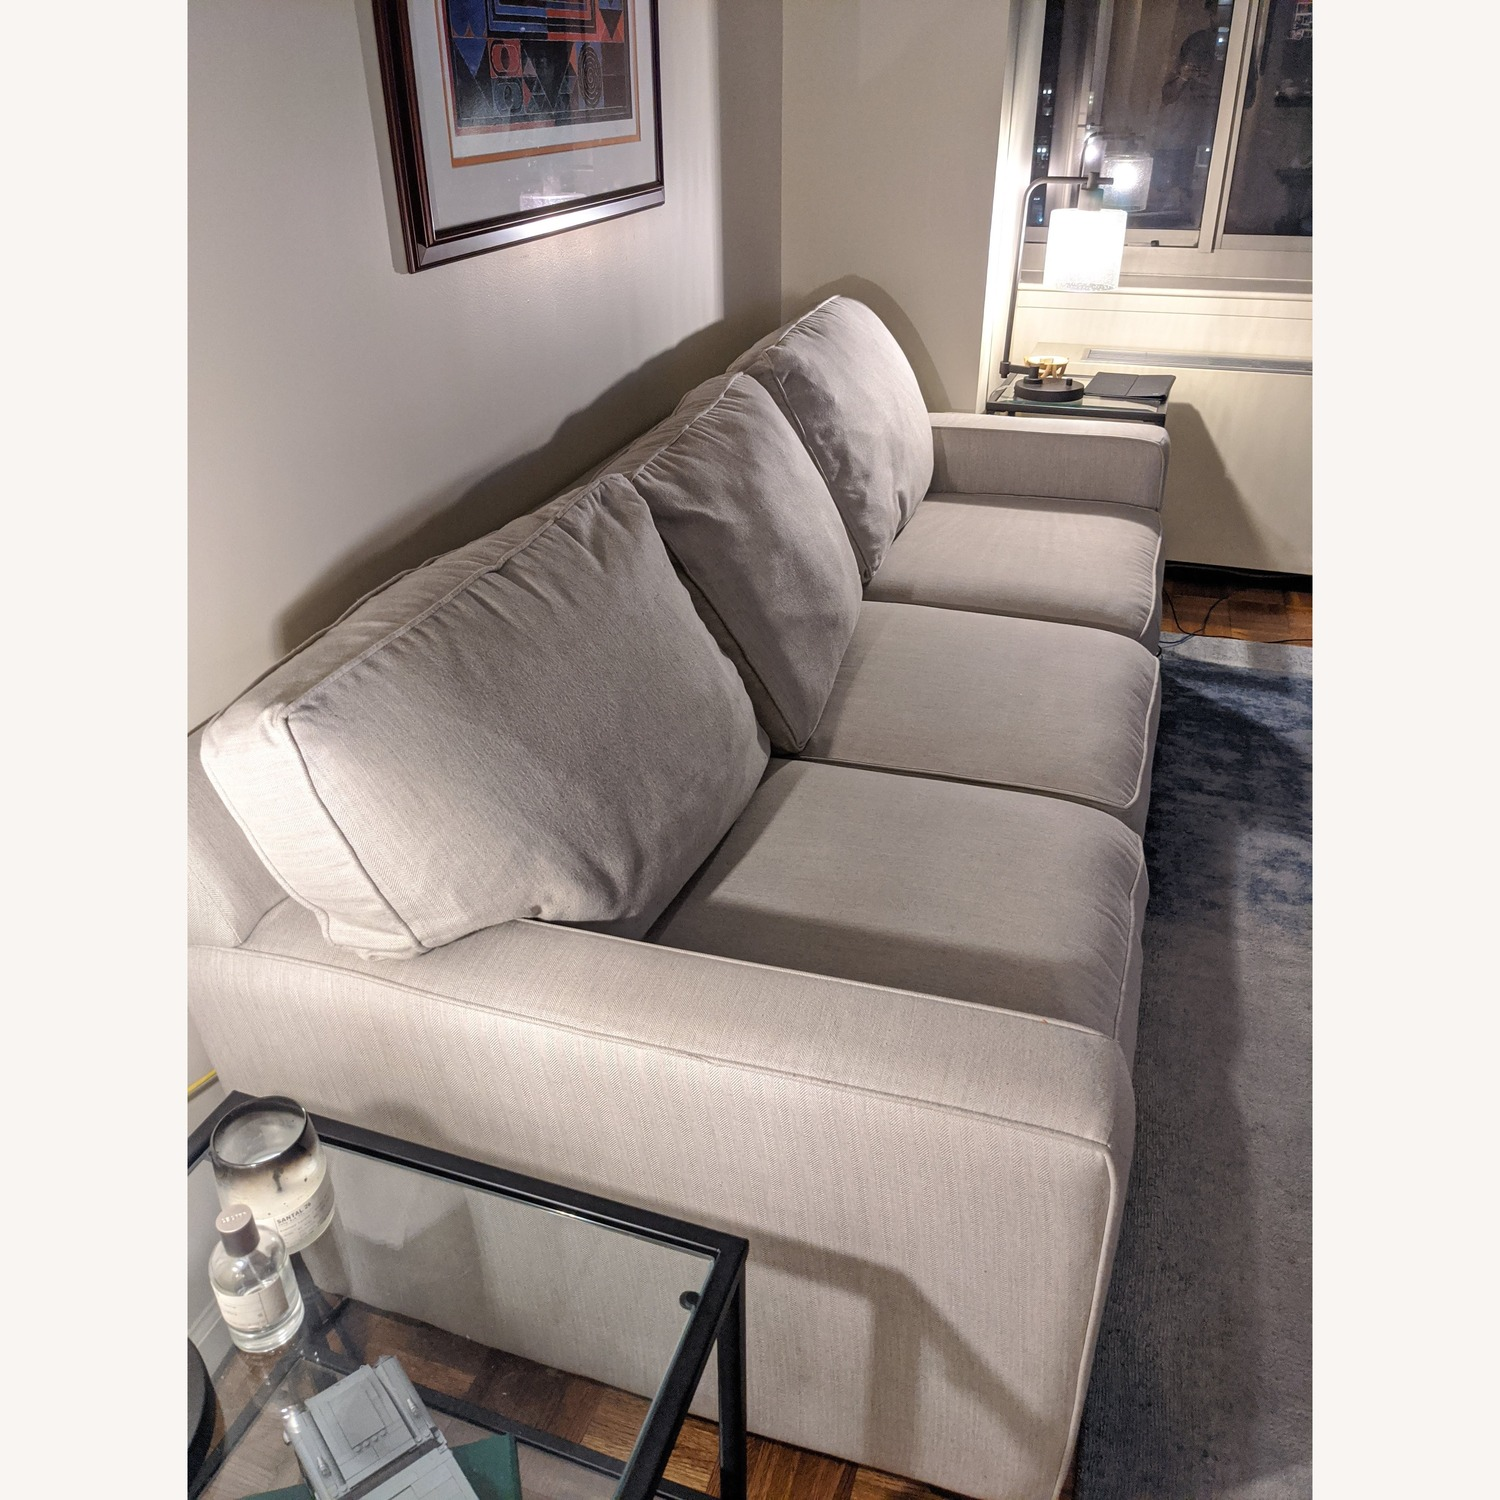 Pottery Barn Buchanan Square Arm Upholstered Couch - image-3